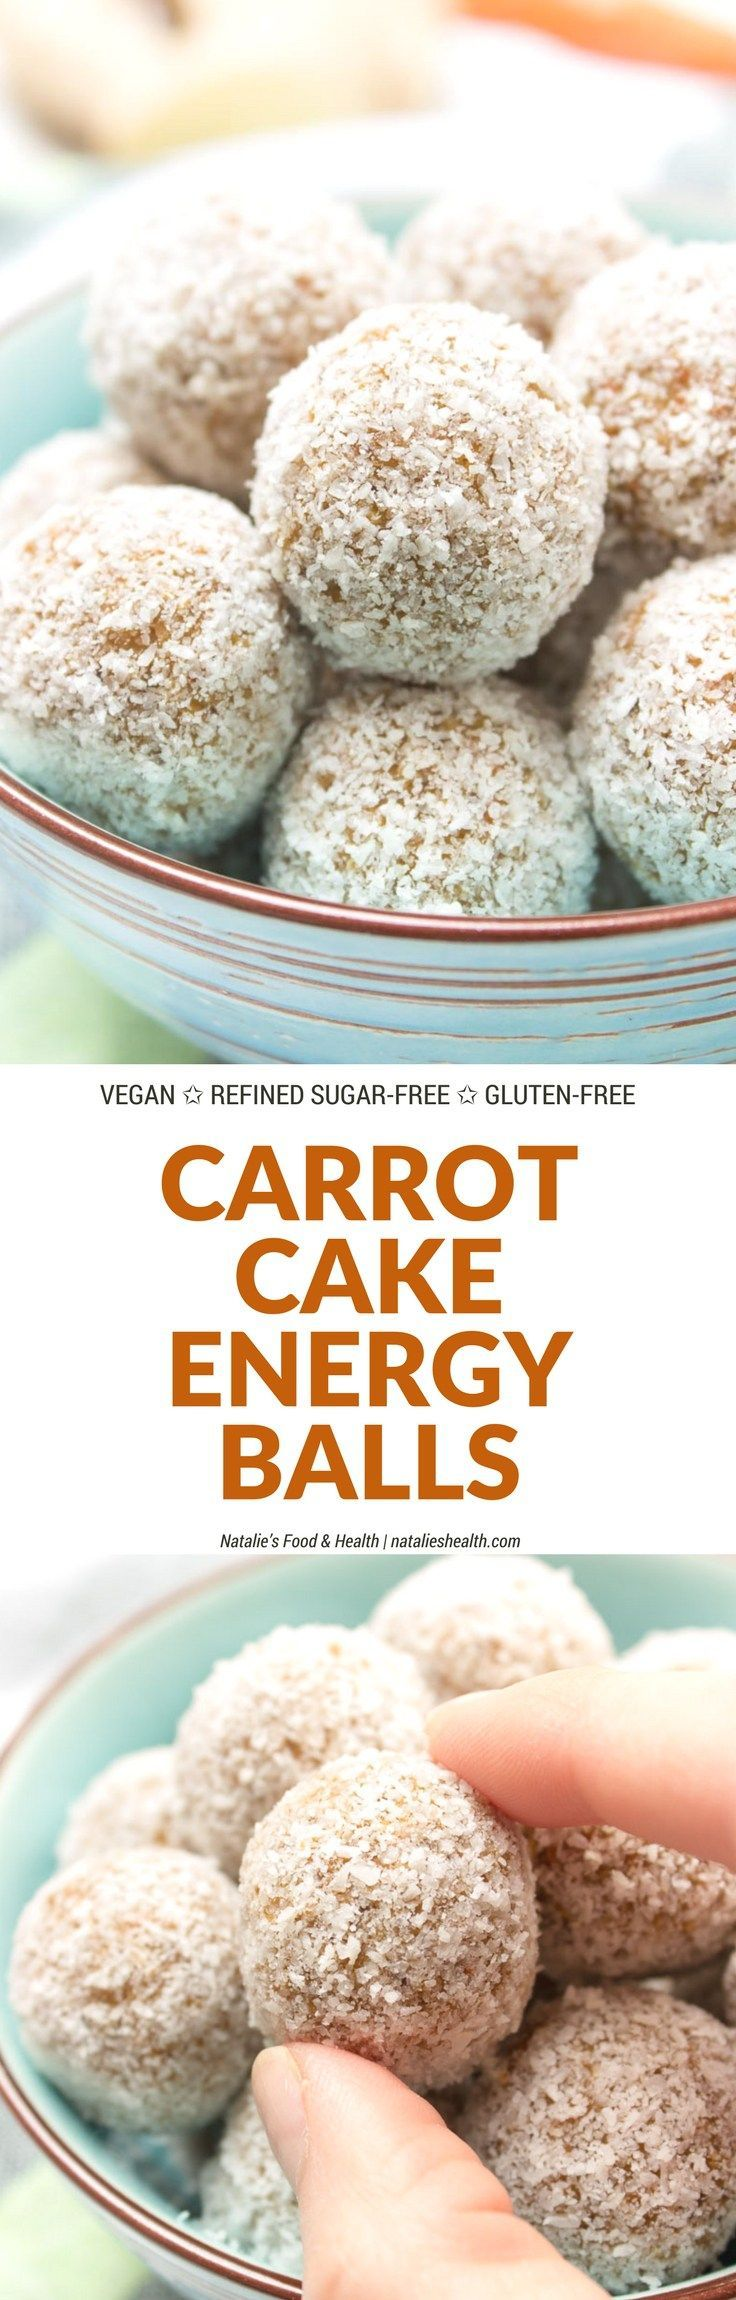 Raw no-bake Carrot Cake Energy Balls made with all HEALTHY ingredients. These yummy bites are refined sugar-free, gluten-free and vegan. Perfect snack, a post-workout snack or simple dessert. | natalieshealth.com | #vegan #glutenfree #sugarfree #Easter #h